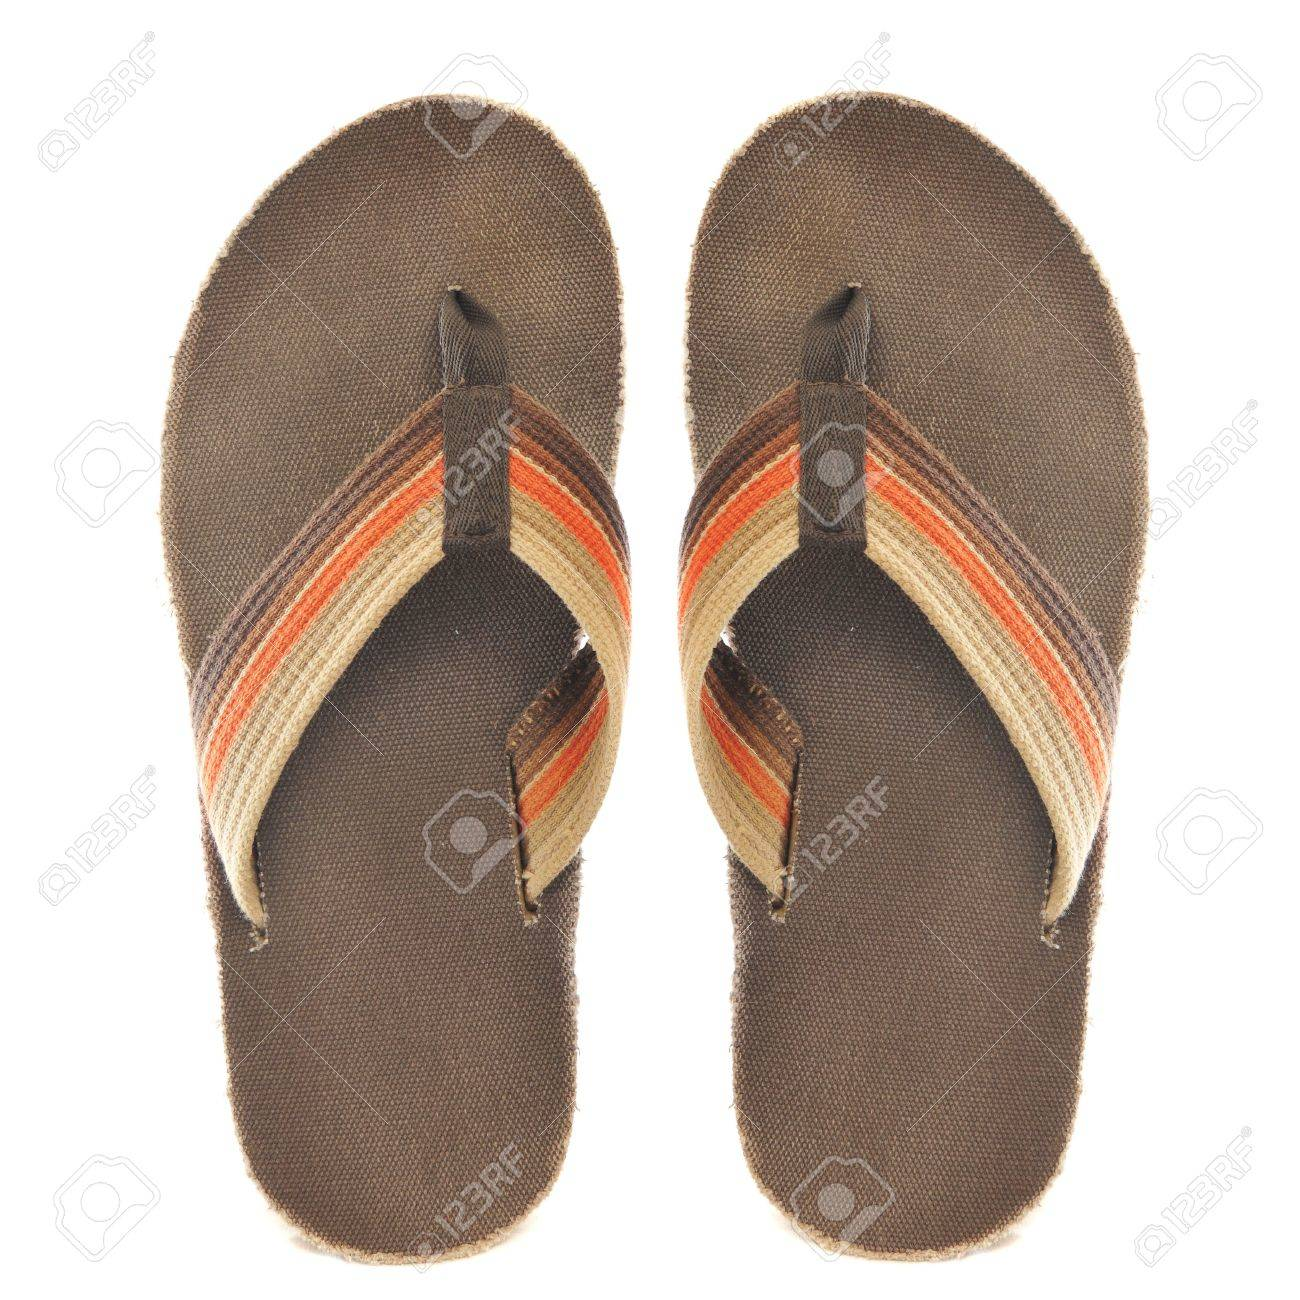 Pair of brown and orange retro oldschool junglist sandals isolated on a pure white background Stock Photo - 6200380